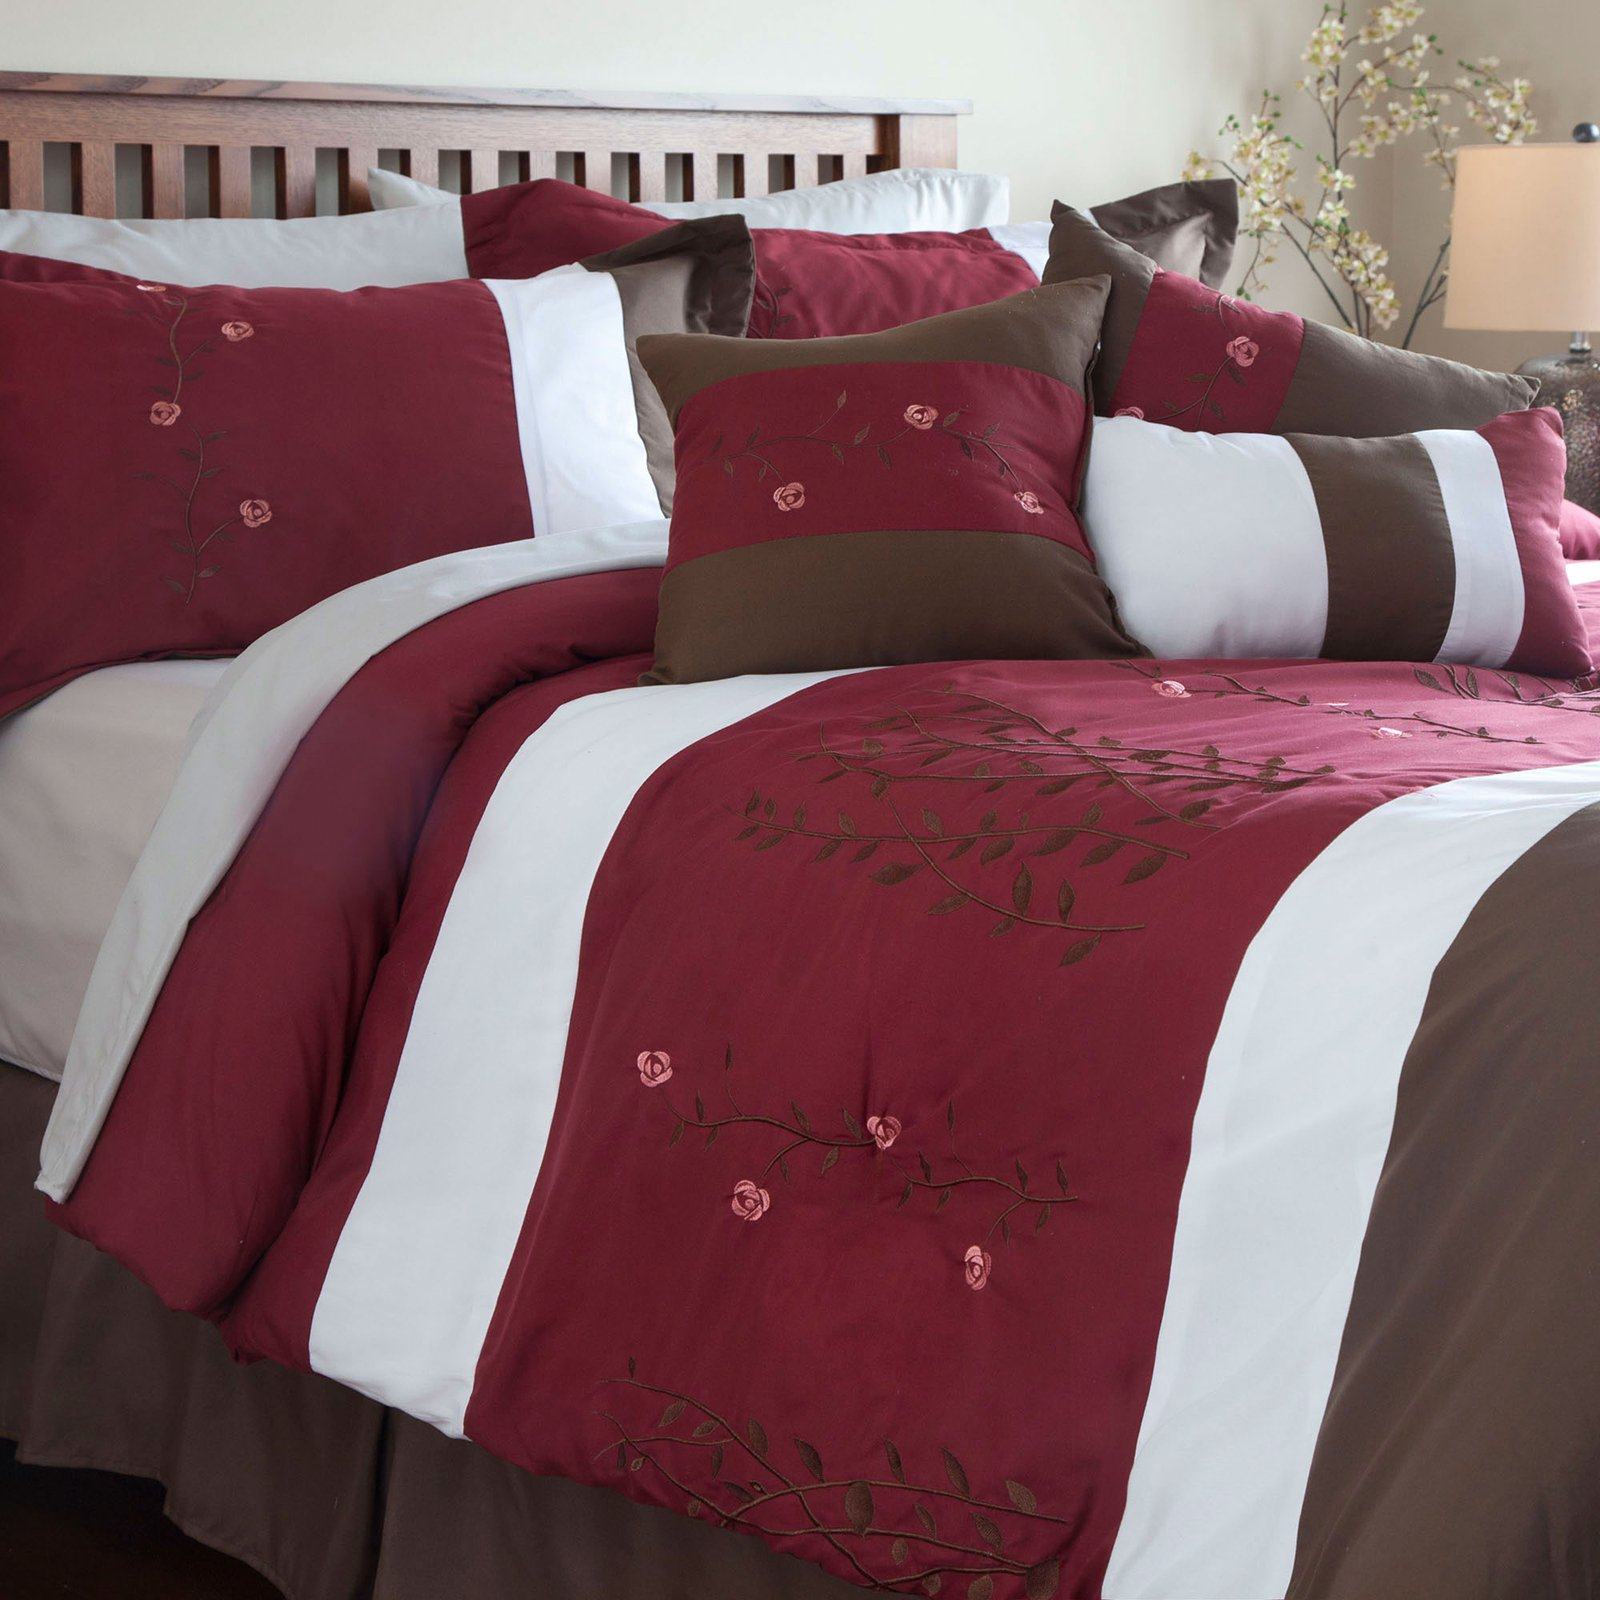 Sarah 7 Piece Embroidered Comforter Set by Lavish Home